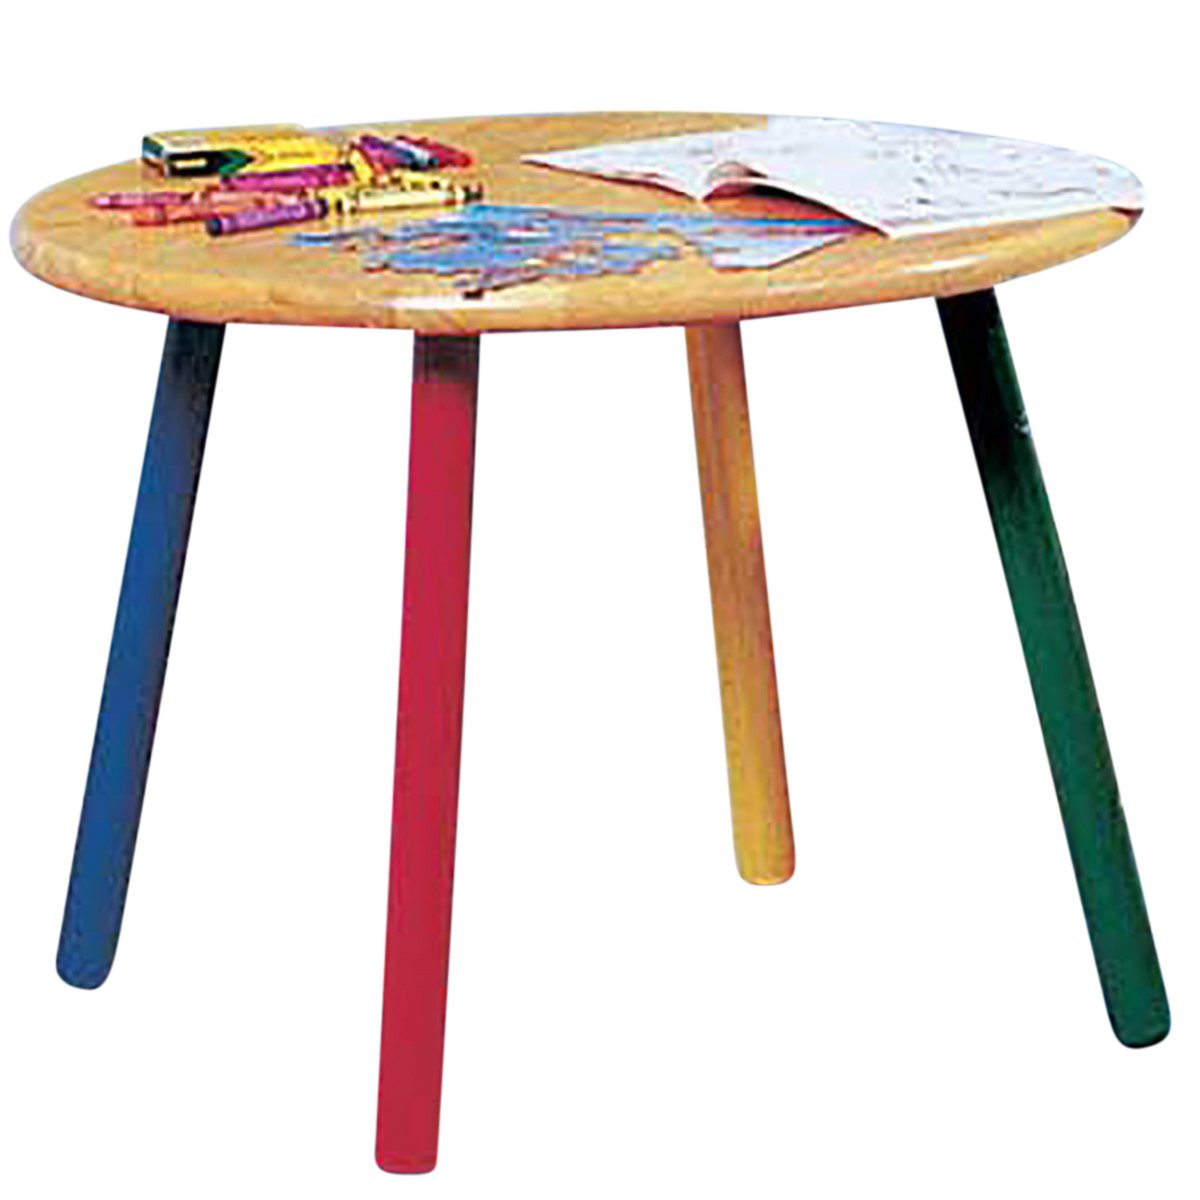 Renovator's Supply Children's Table Hardwood Round Table Colorful Painted Legs